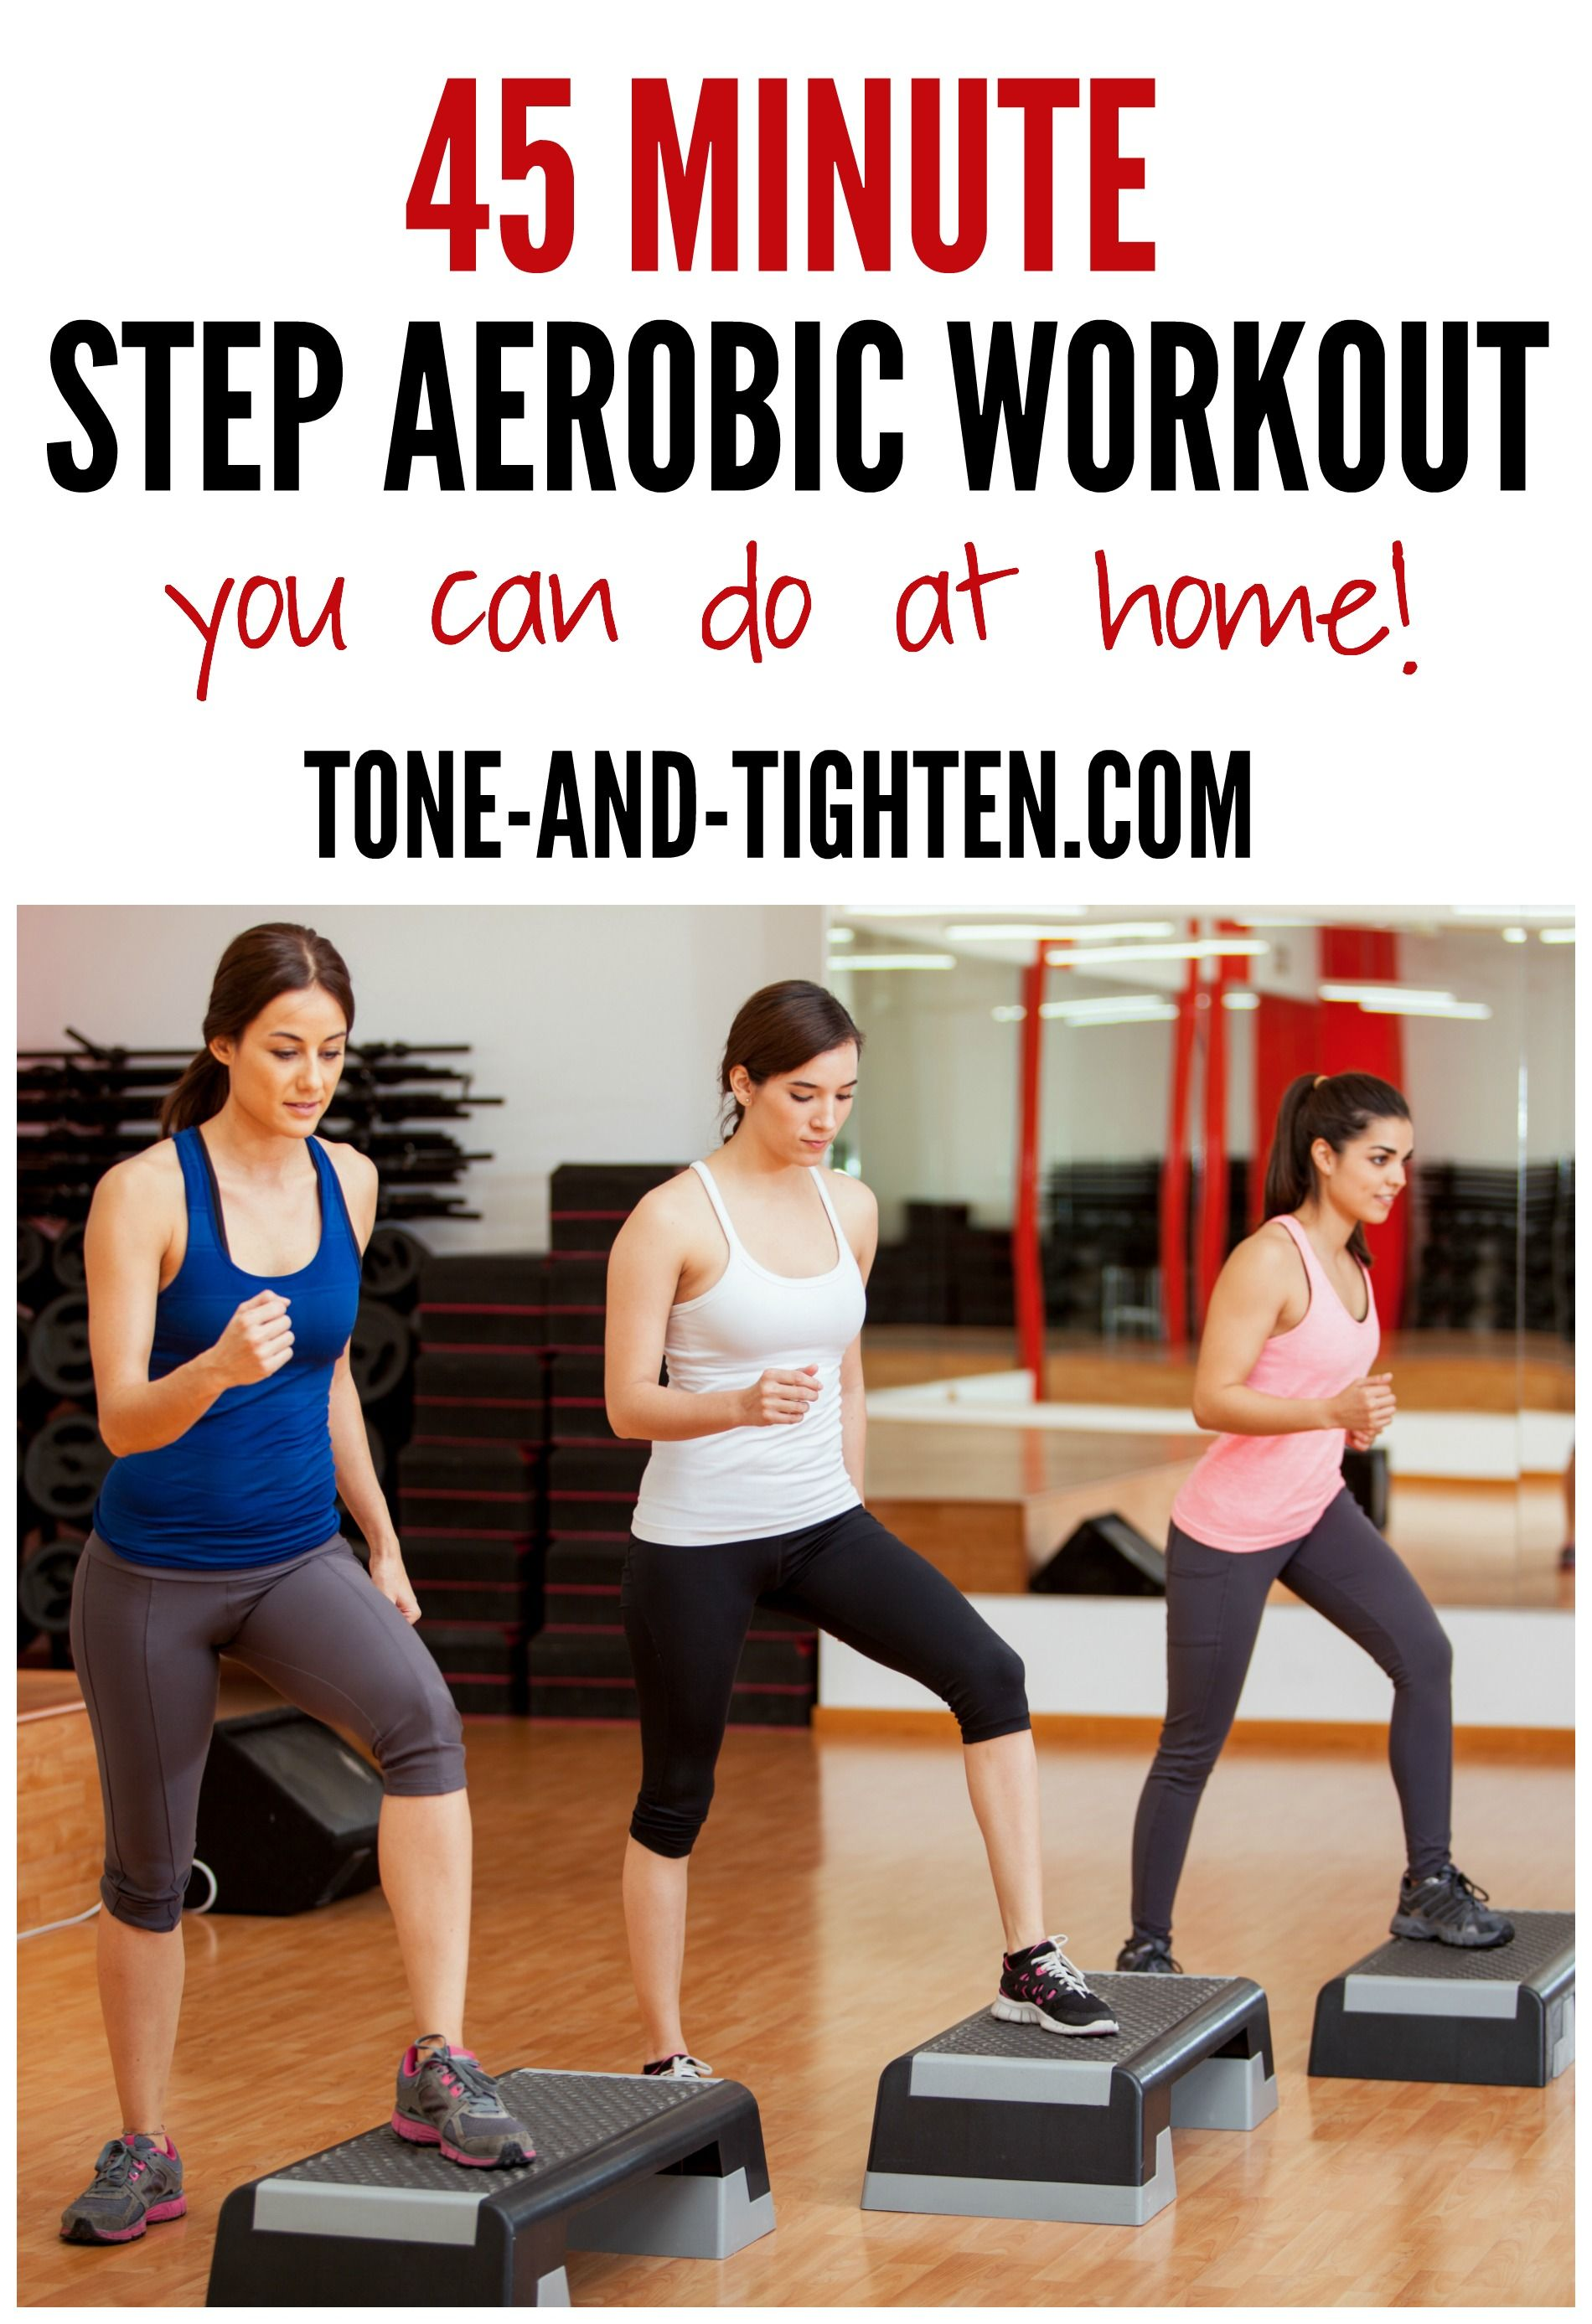 Step Workout: 45 Minute Step Aerobic Workout